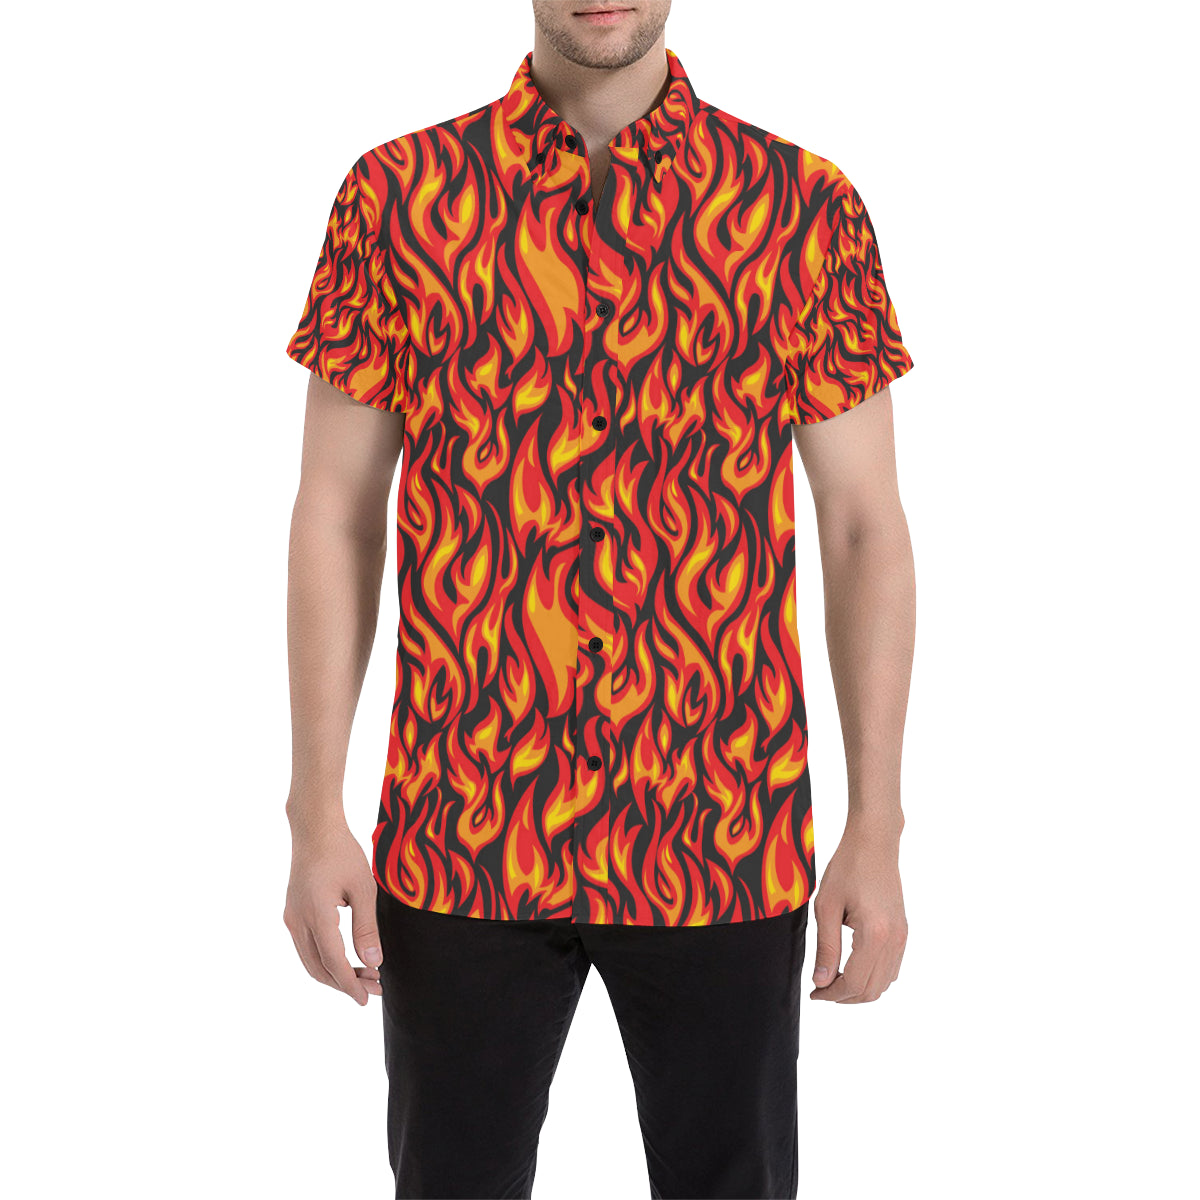 Flame Fire Print Pattern Men Button Up Shirt